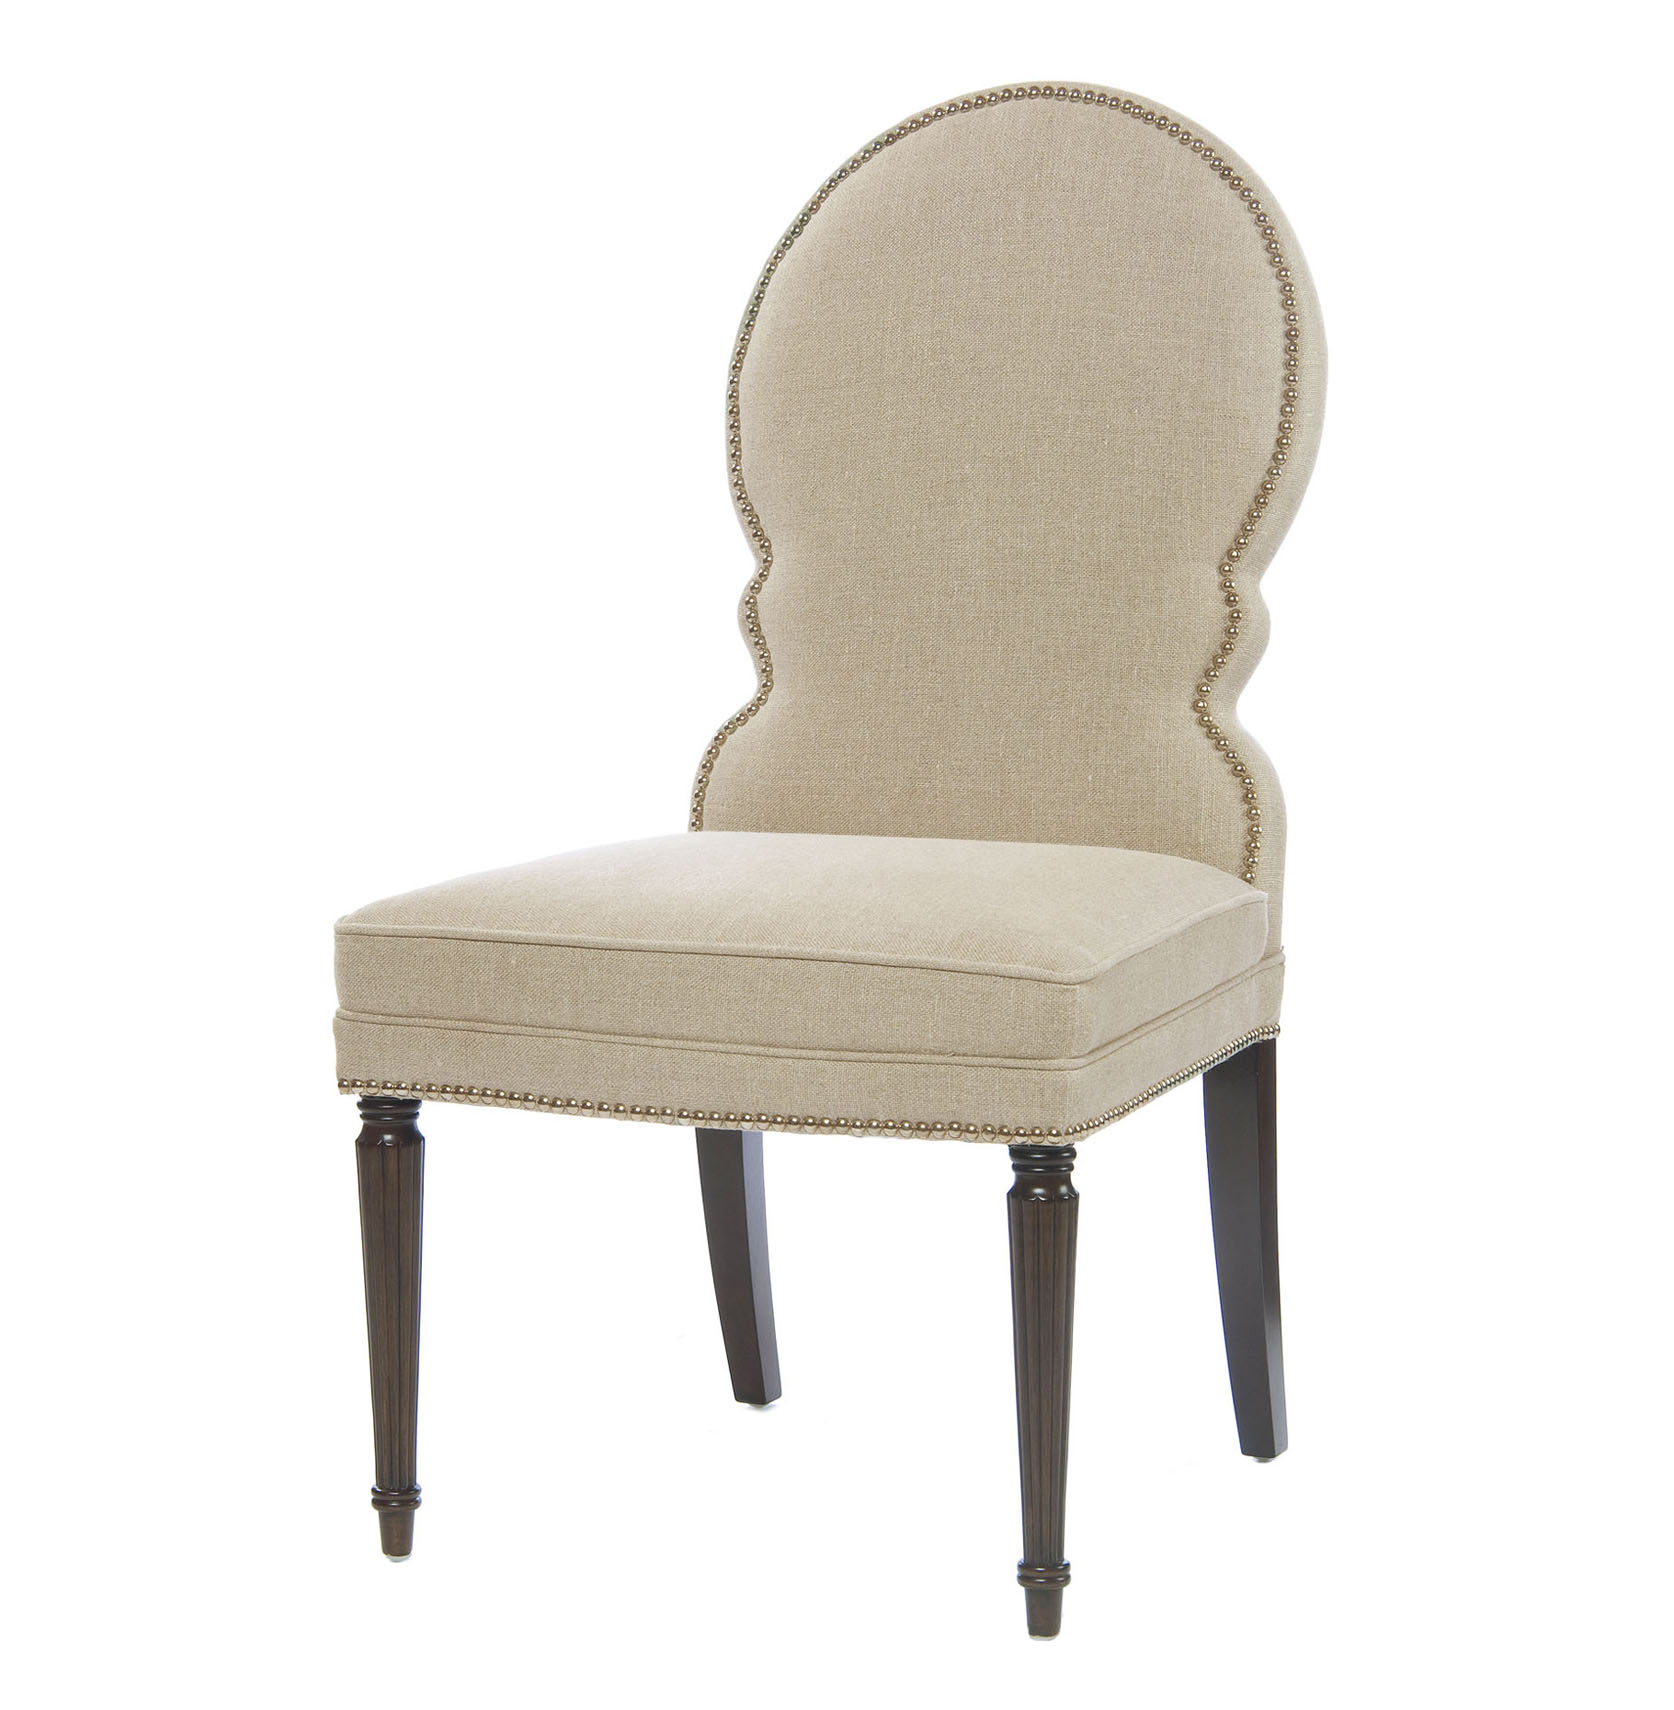 Sadie Venetian Rounded Back Natural Linen Dining Side Chair